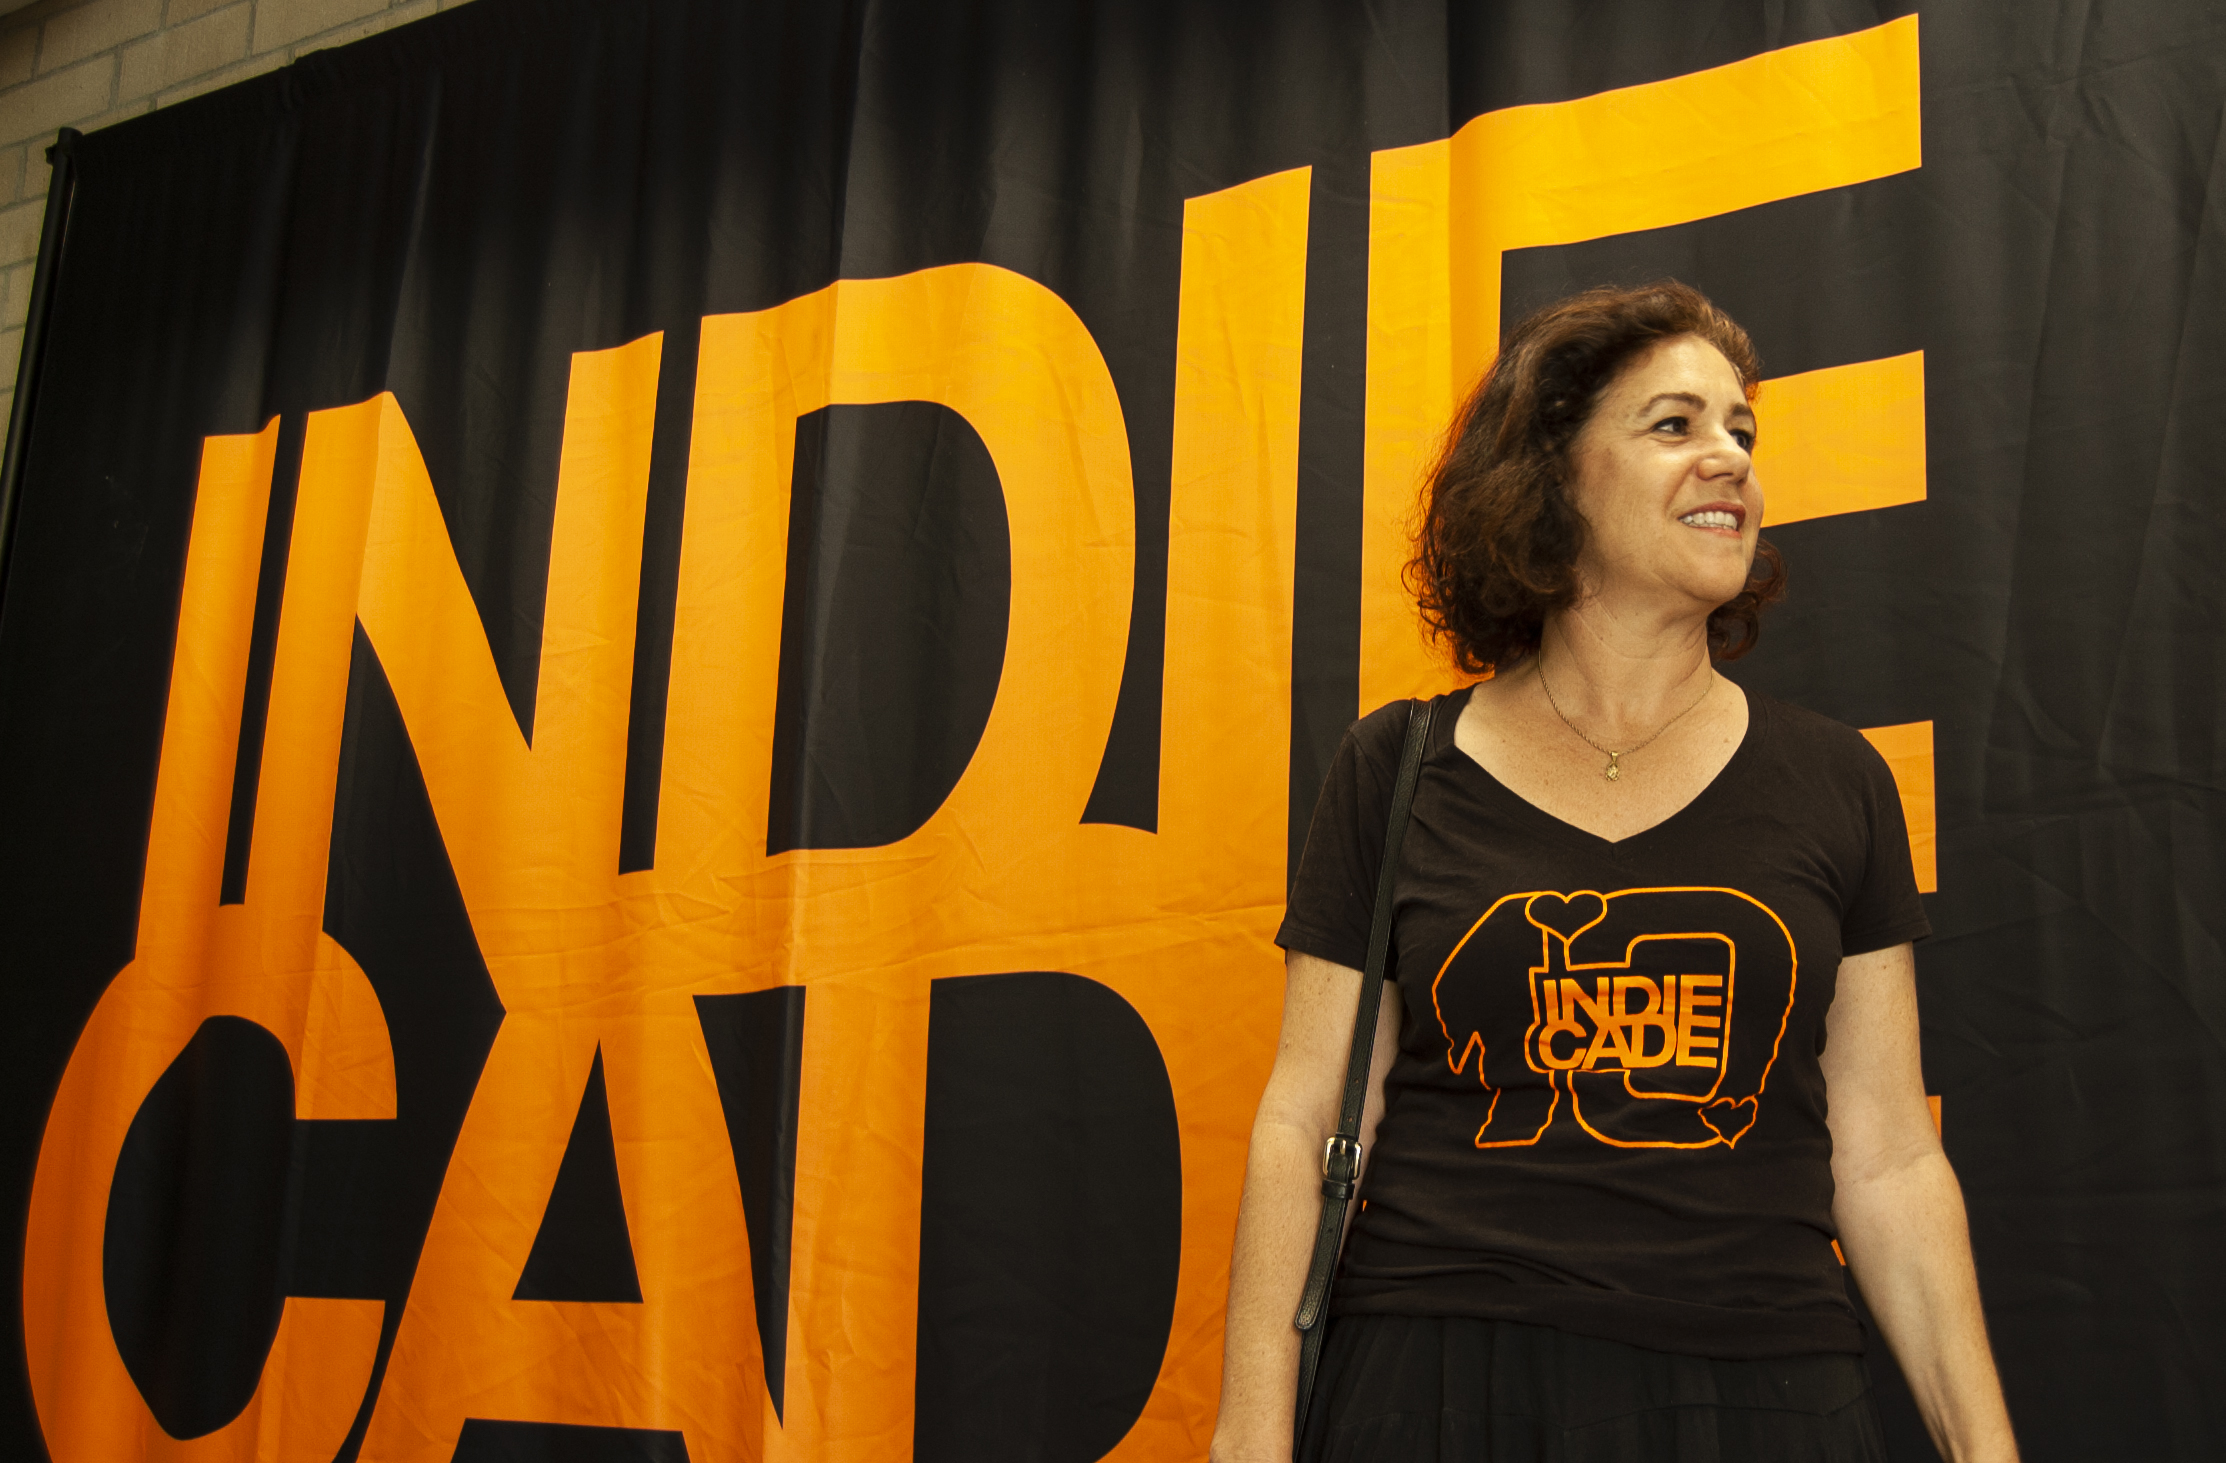 IndieCade founder Stephanie Barish at IndieCade, October 2018